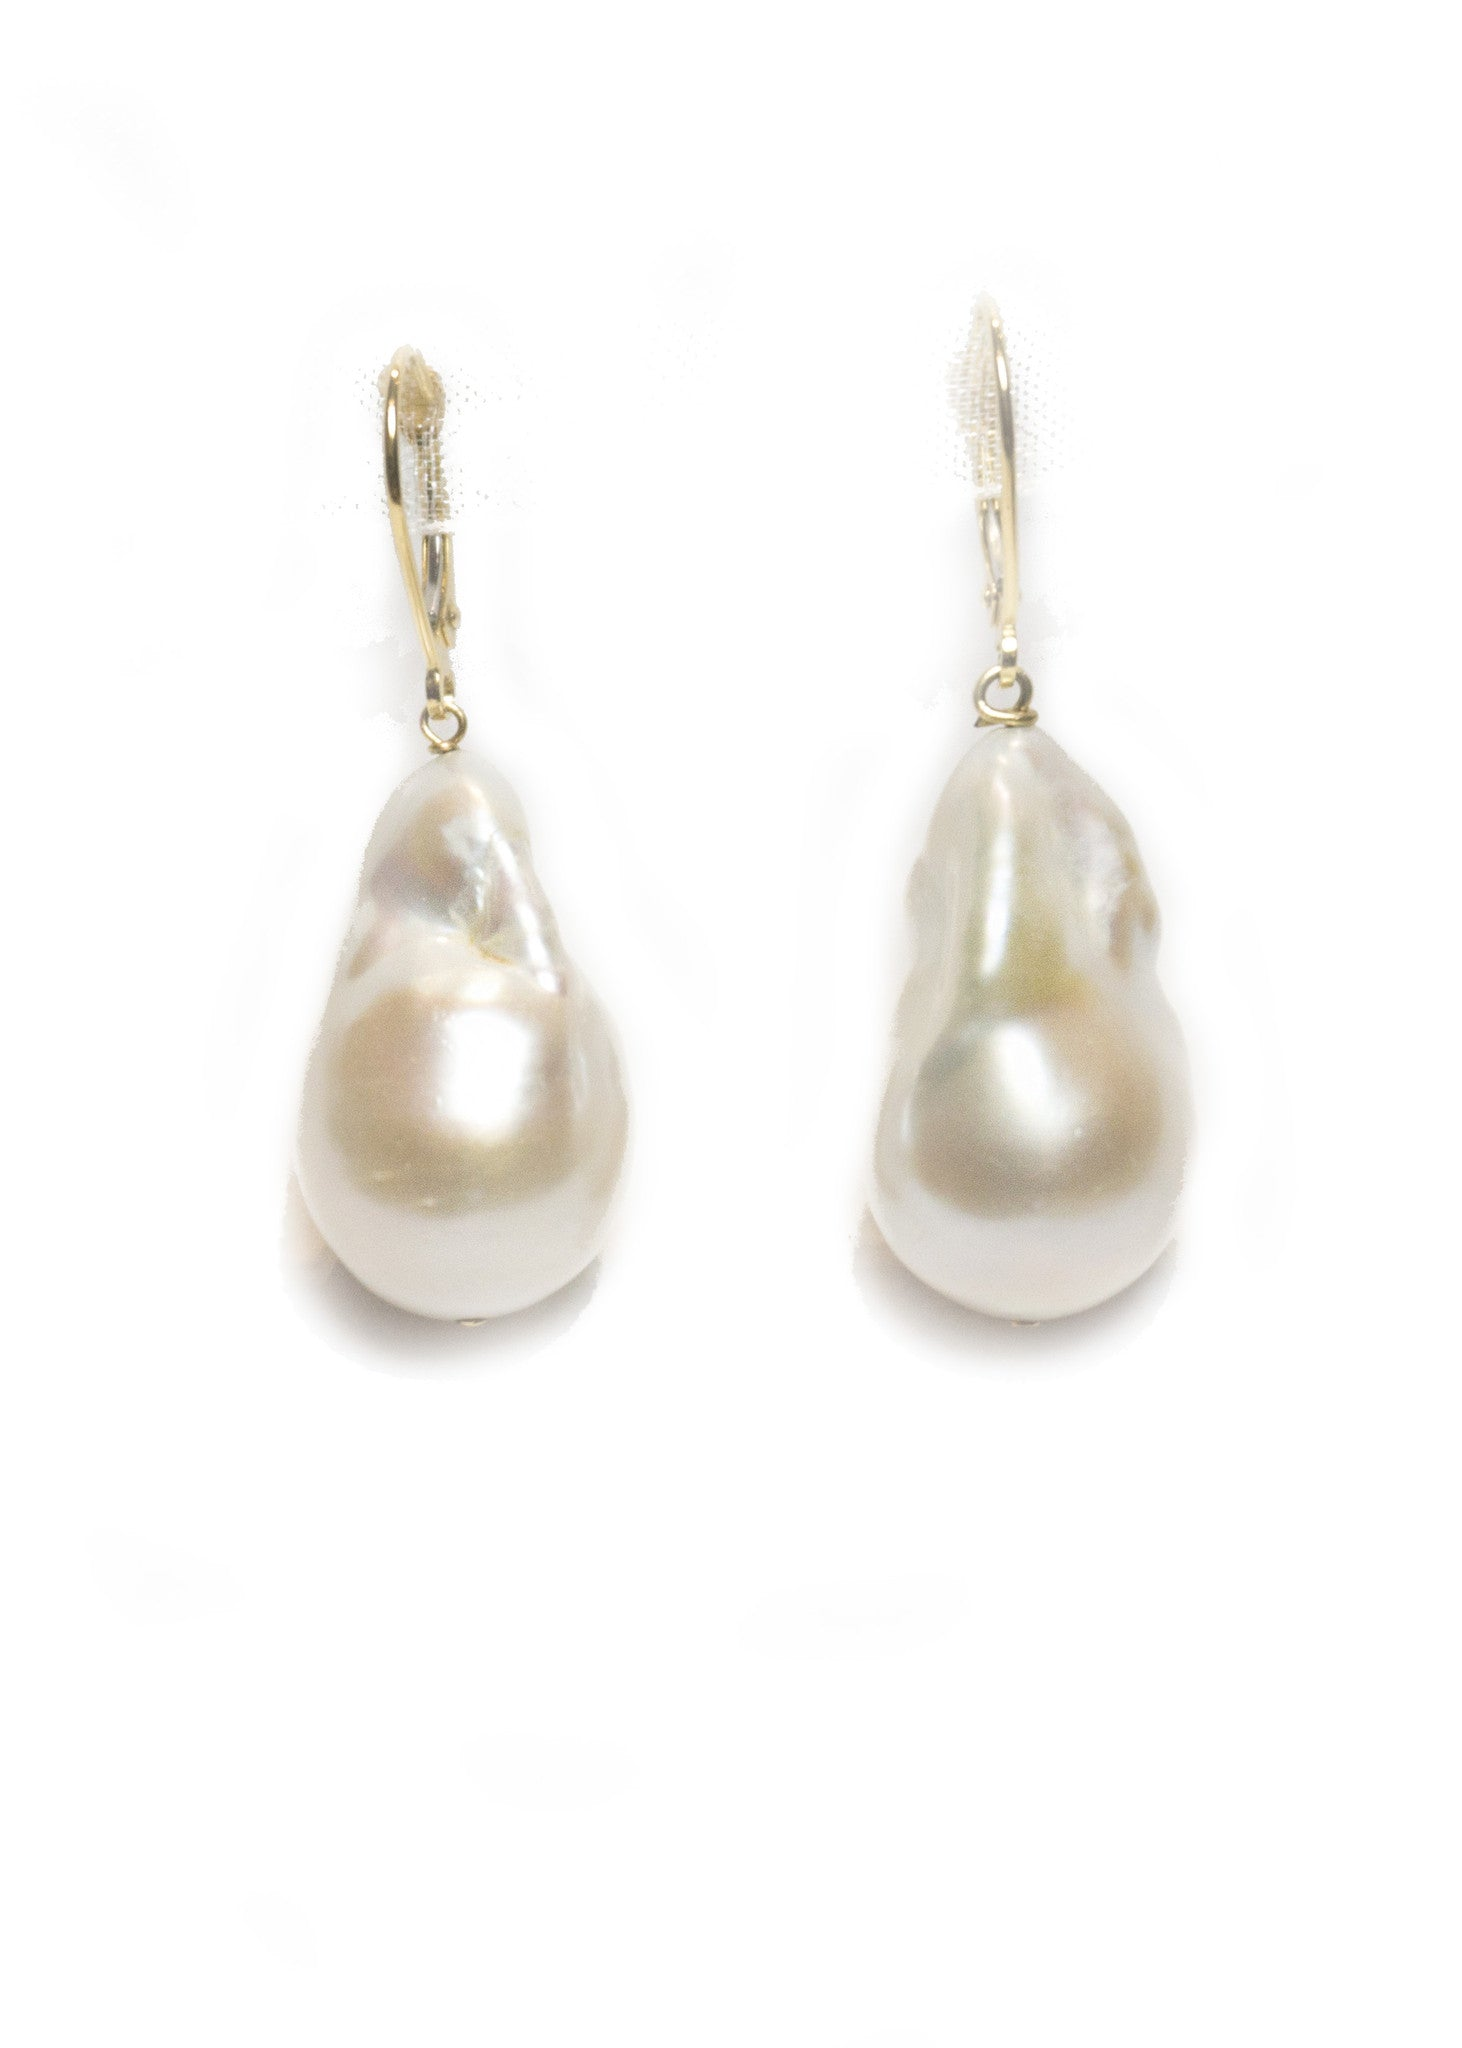 Designs by Alina Minimalist Baroque White pearl earrings